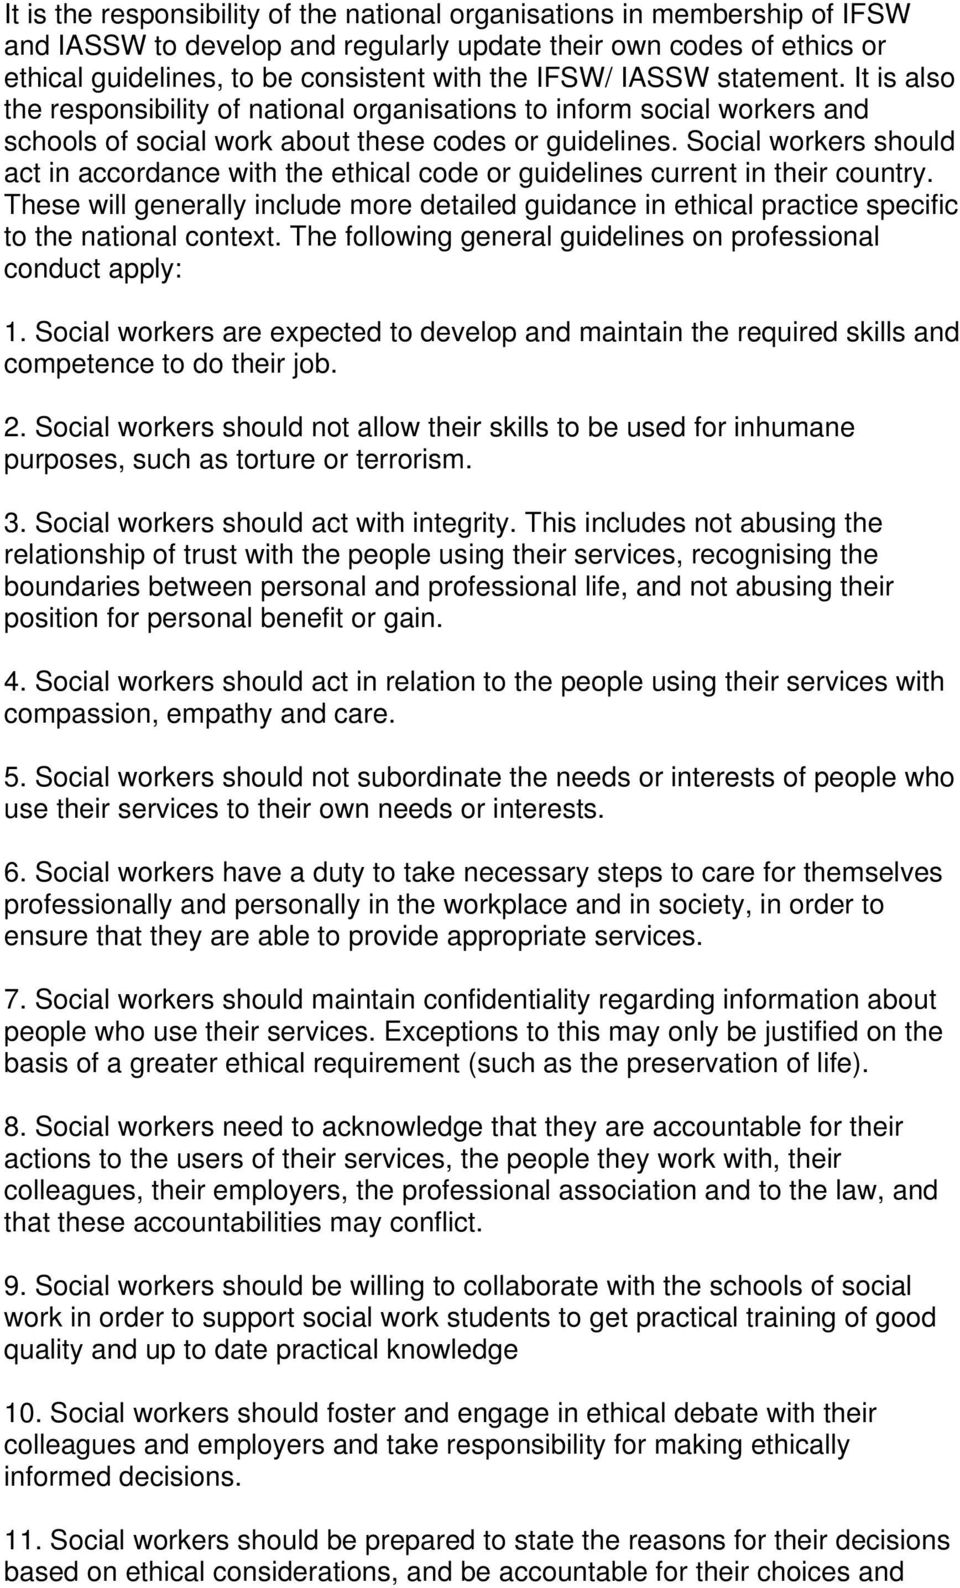 Social workers should act in accordance with the ethical code or guidelines current in their country.